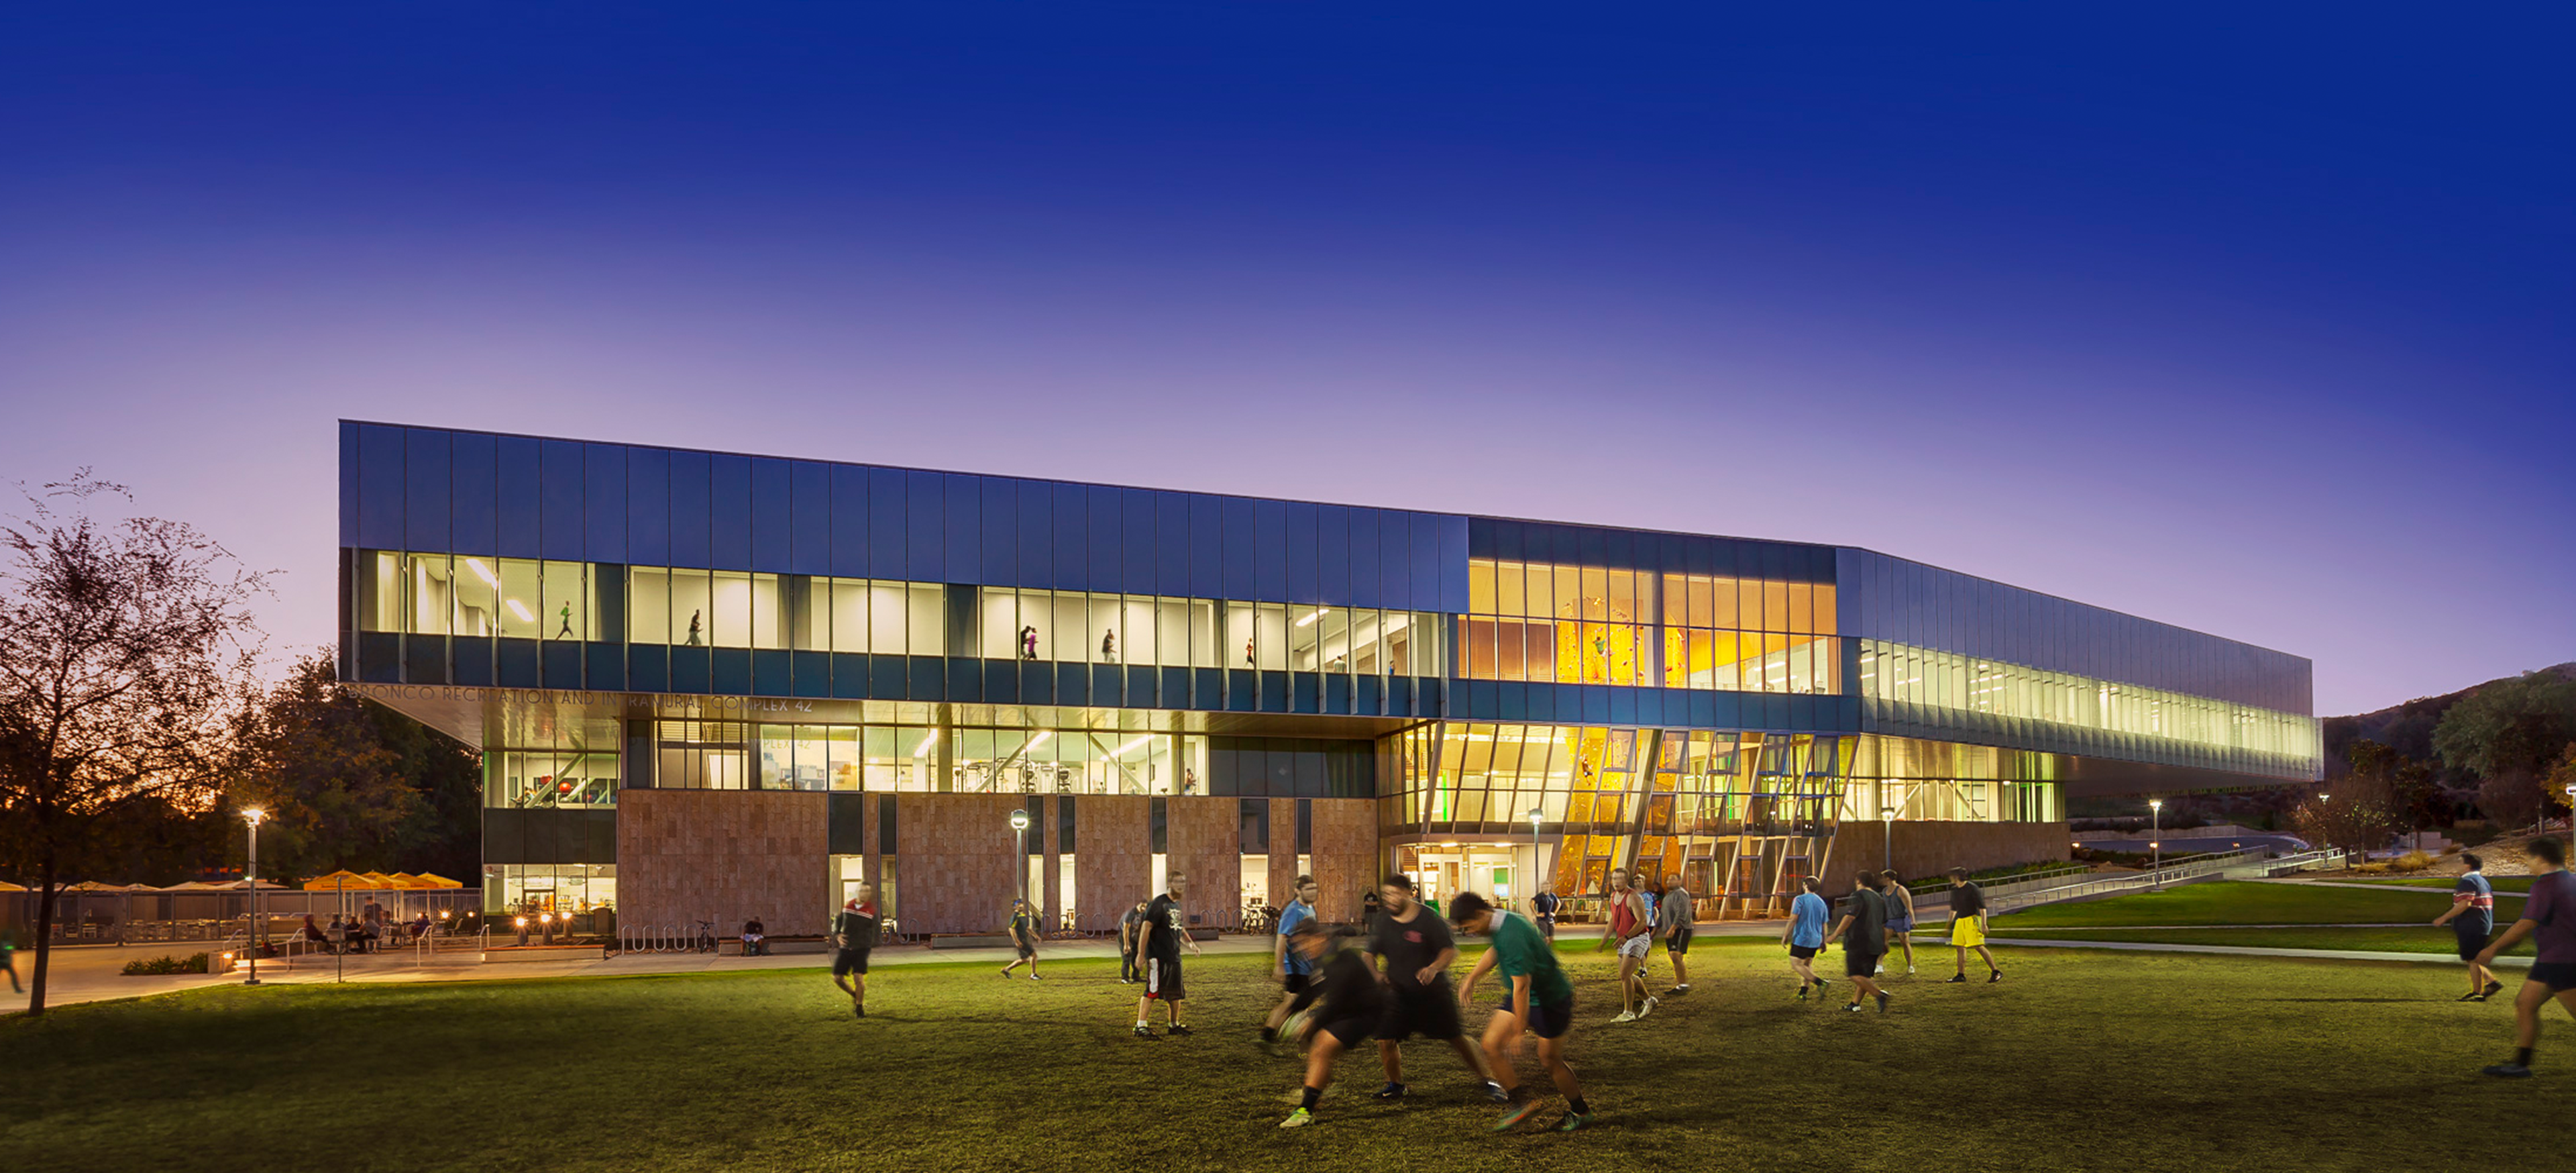 Cal Poly Pomona Celebrates Grand Opening of New Recreation Center Designed by LPA Inc.